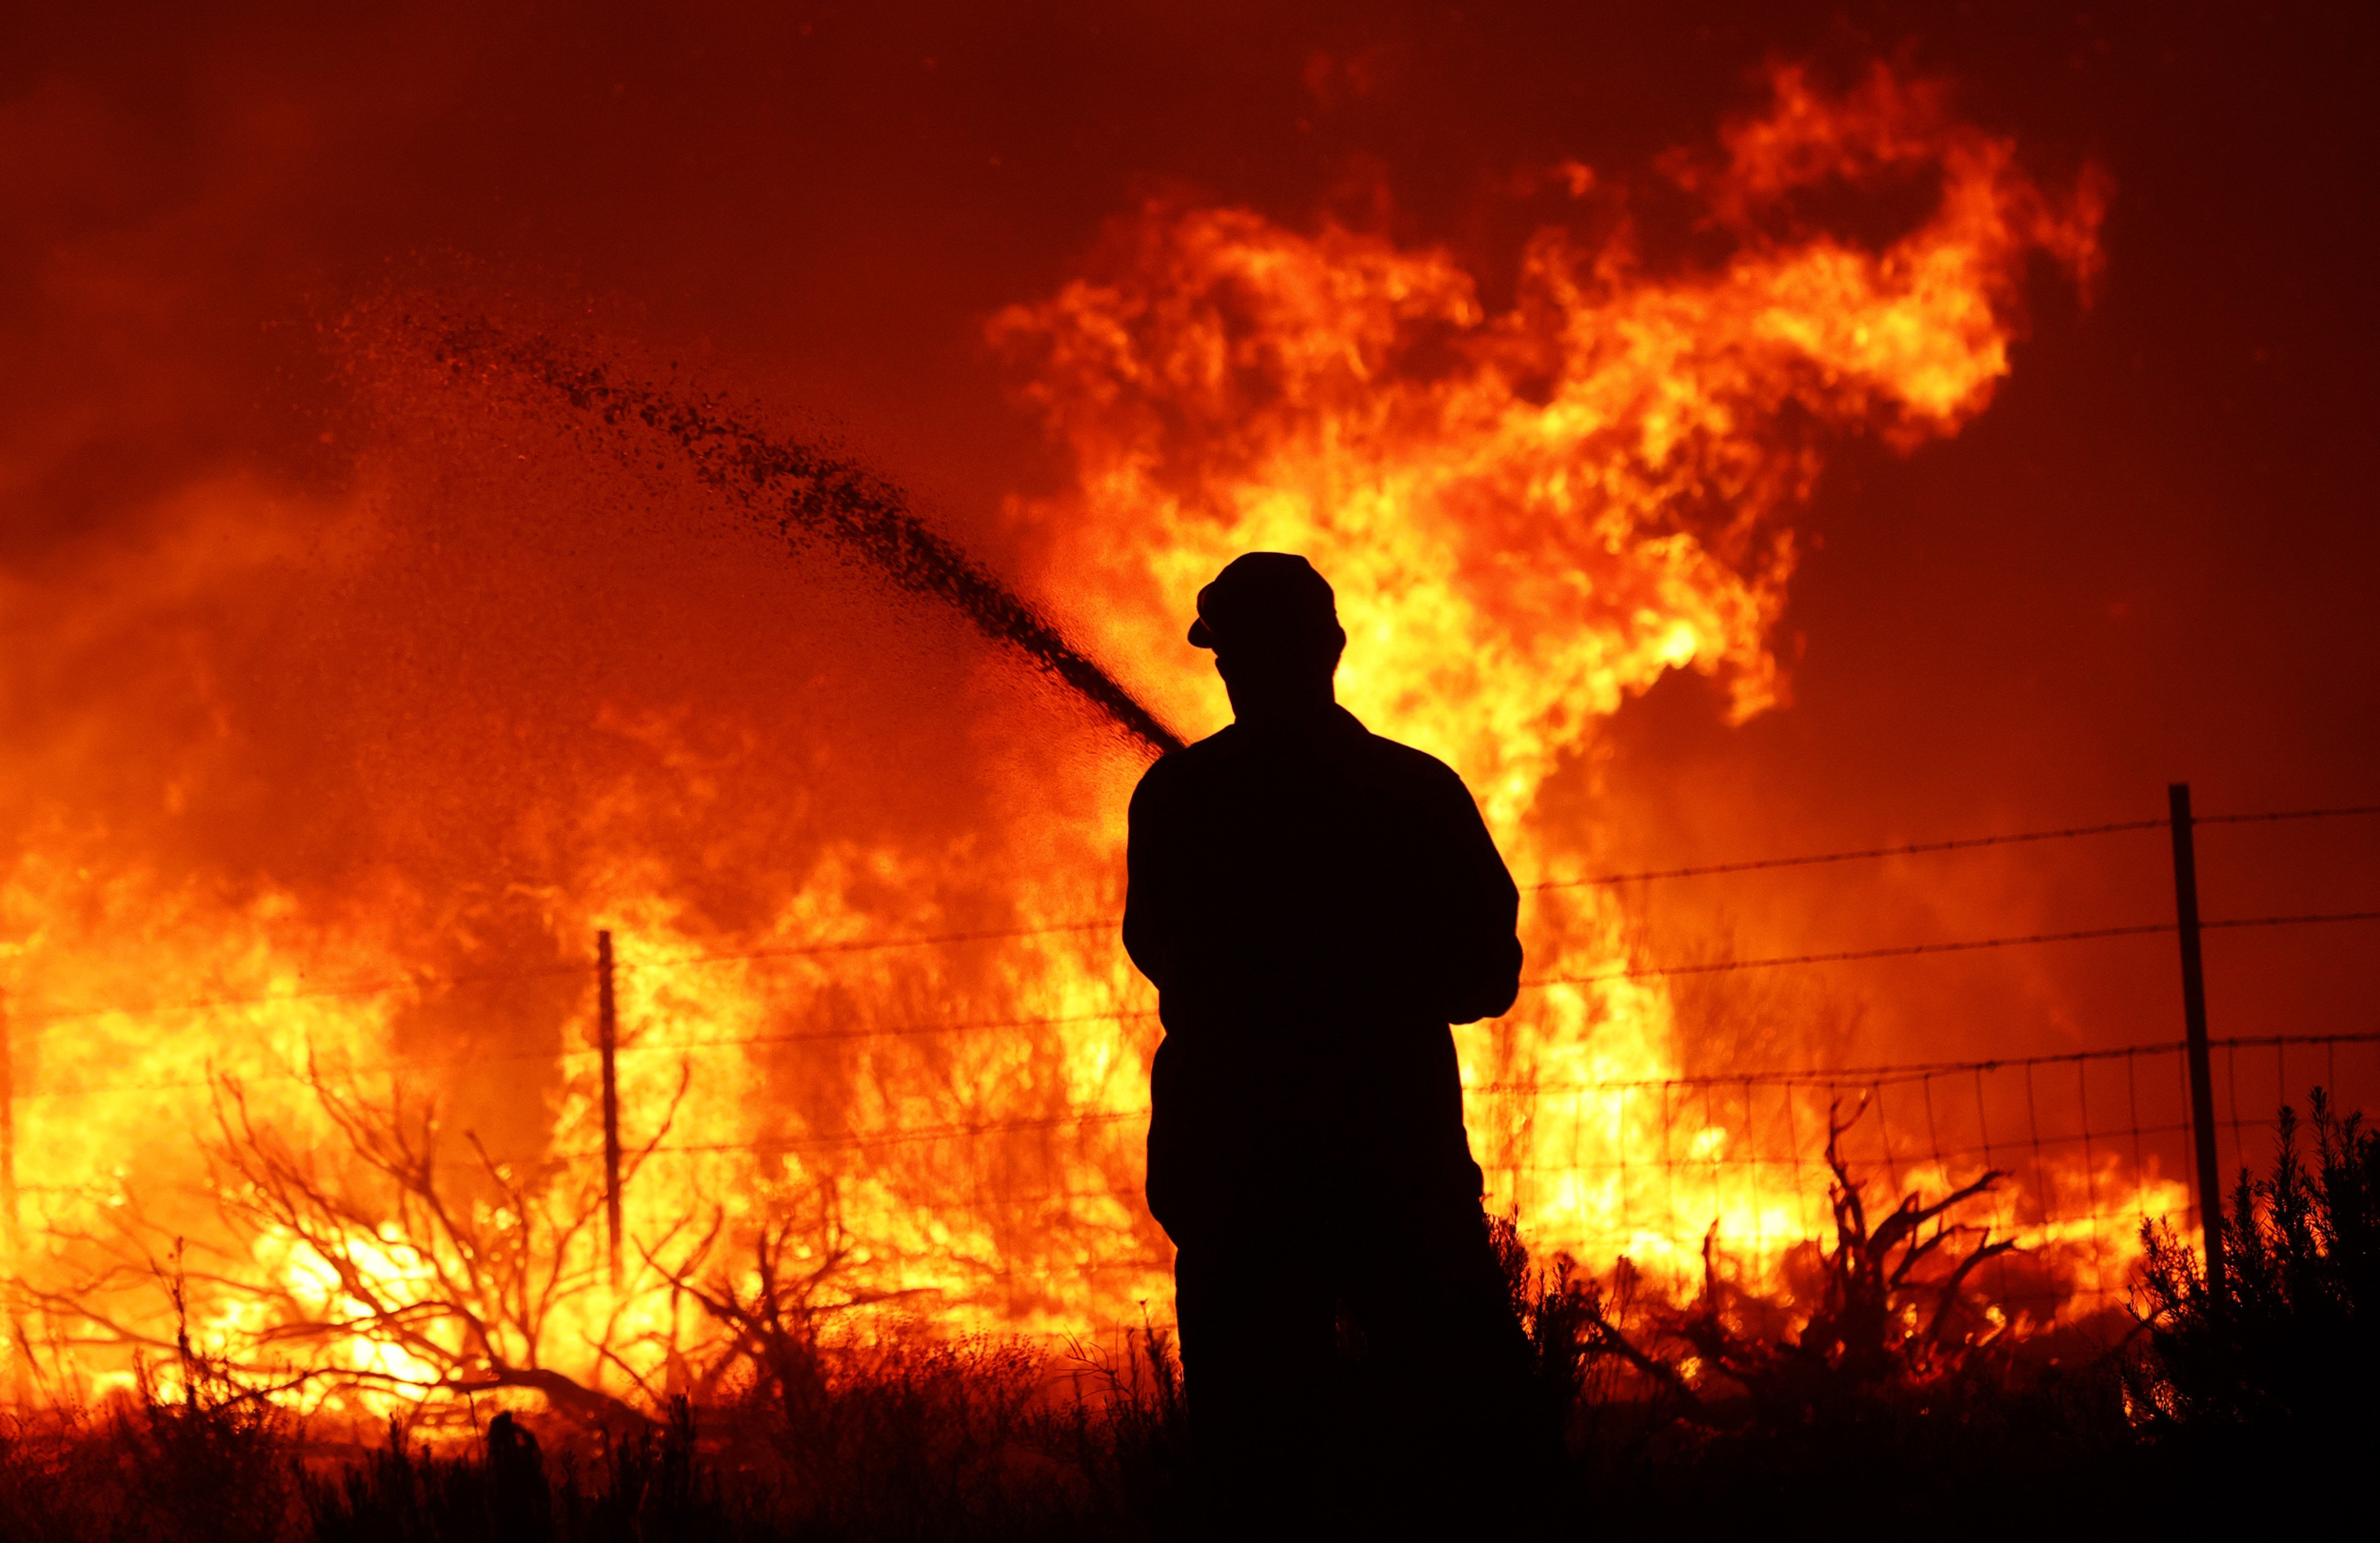 Firefighters could get $600 million boost from Congress. It's probably not enough.